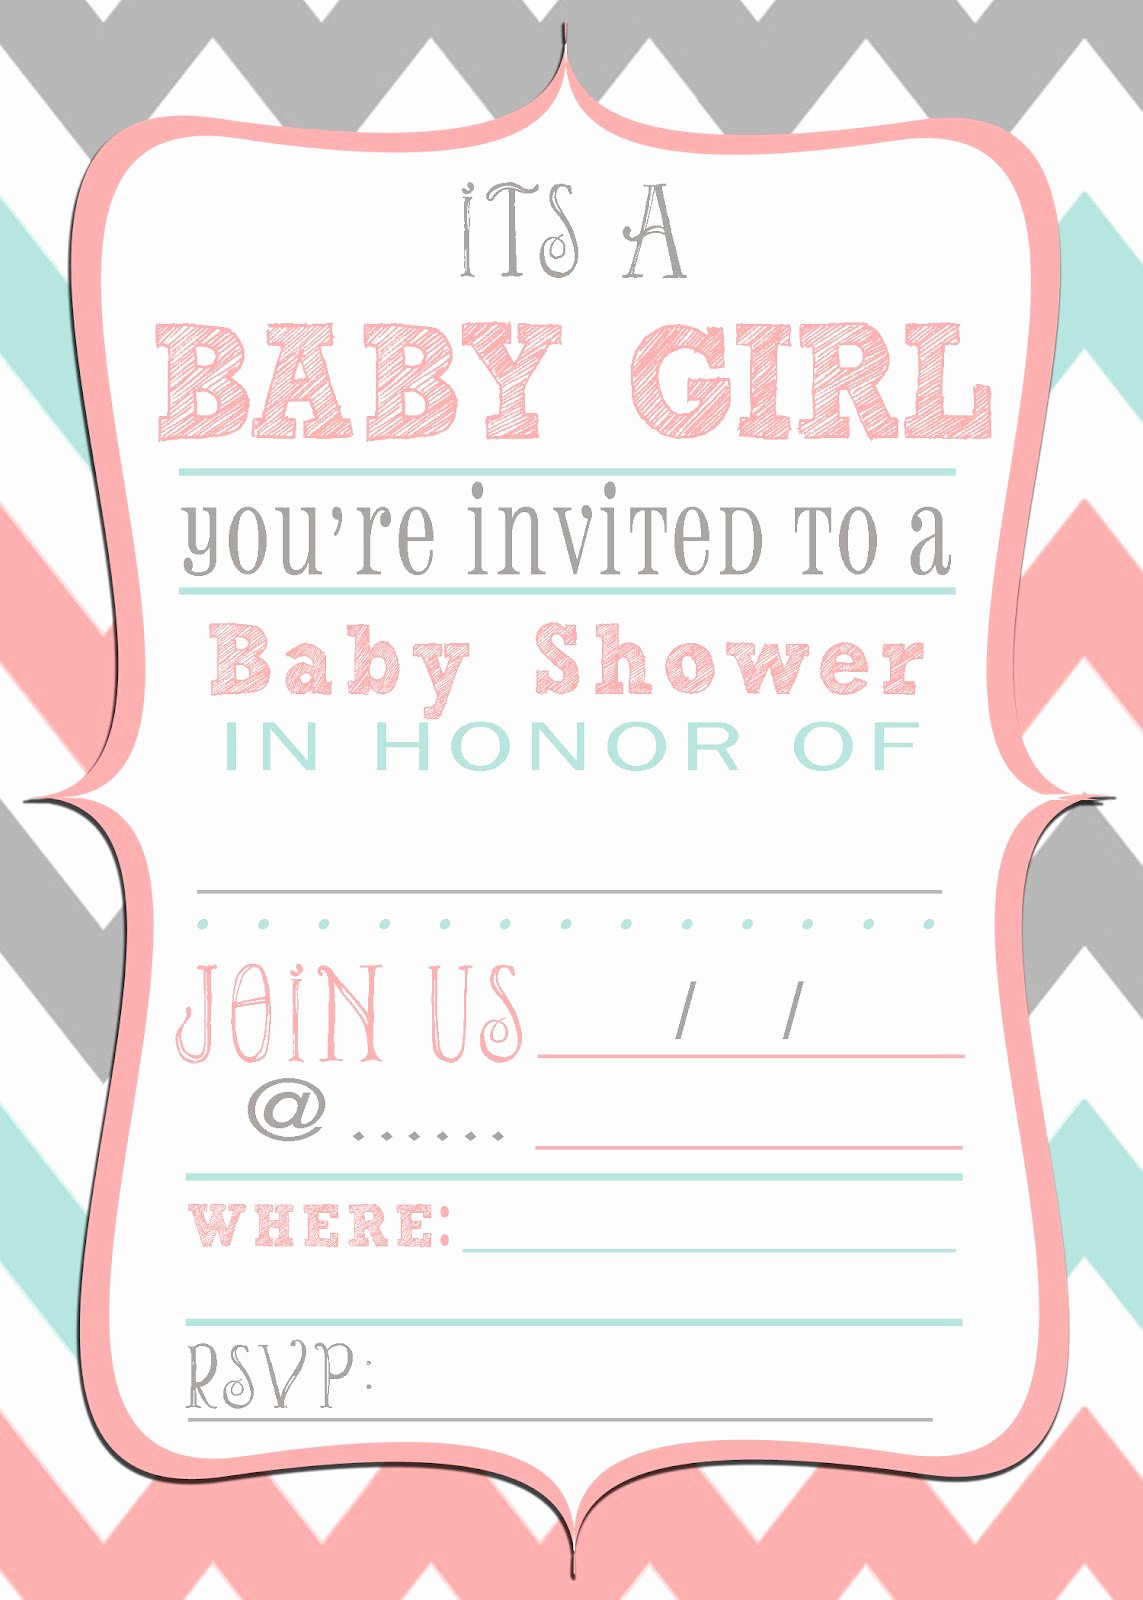 Baby Shower Invitations Templates Editable Beautiful Mrs This and that Baby Shower Banner Free Downloads